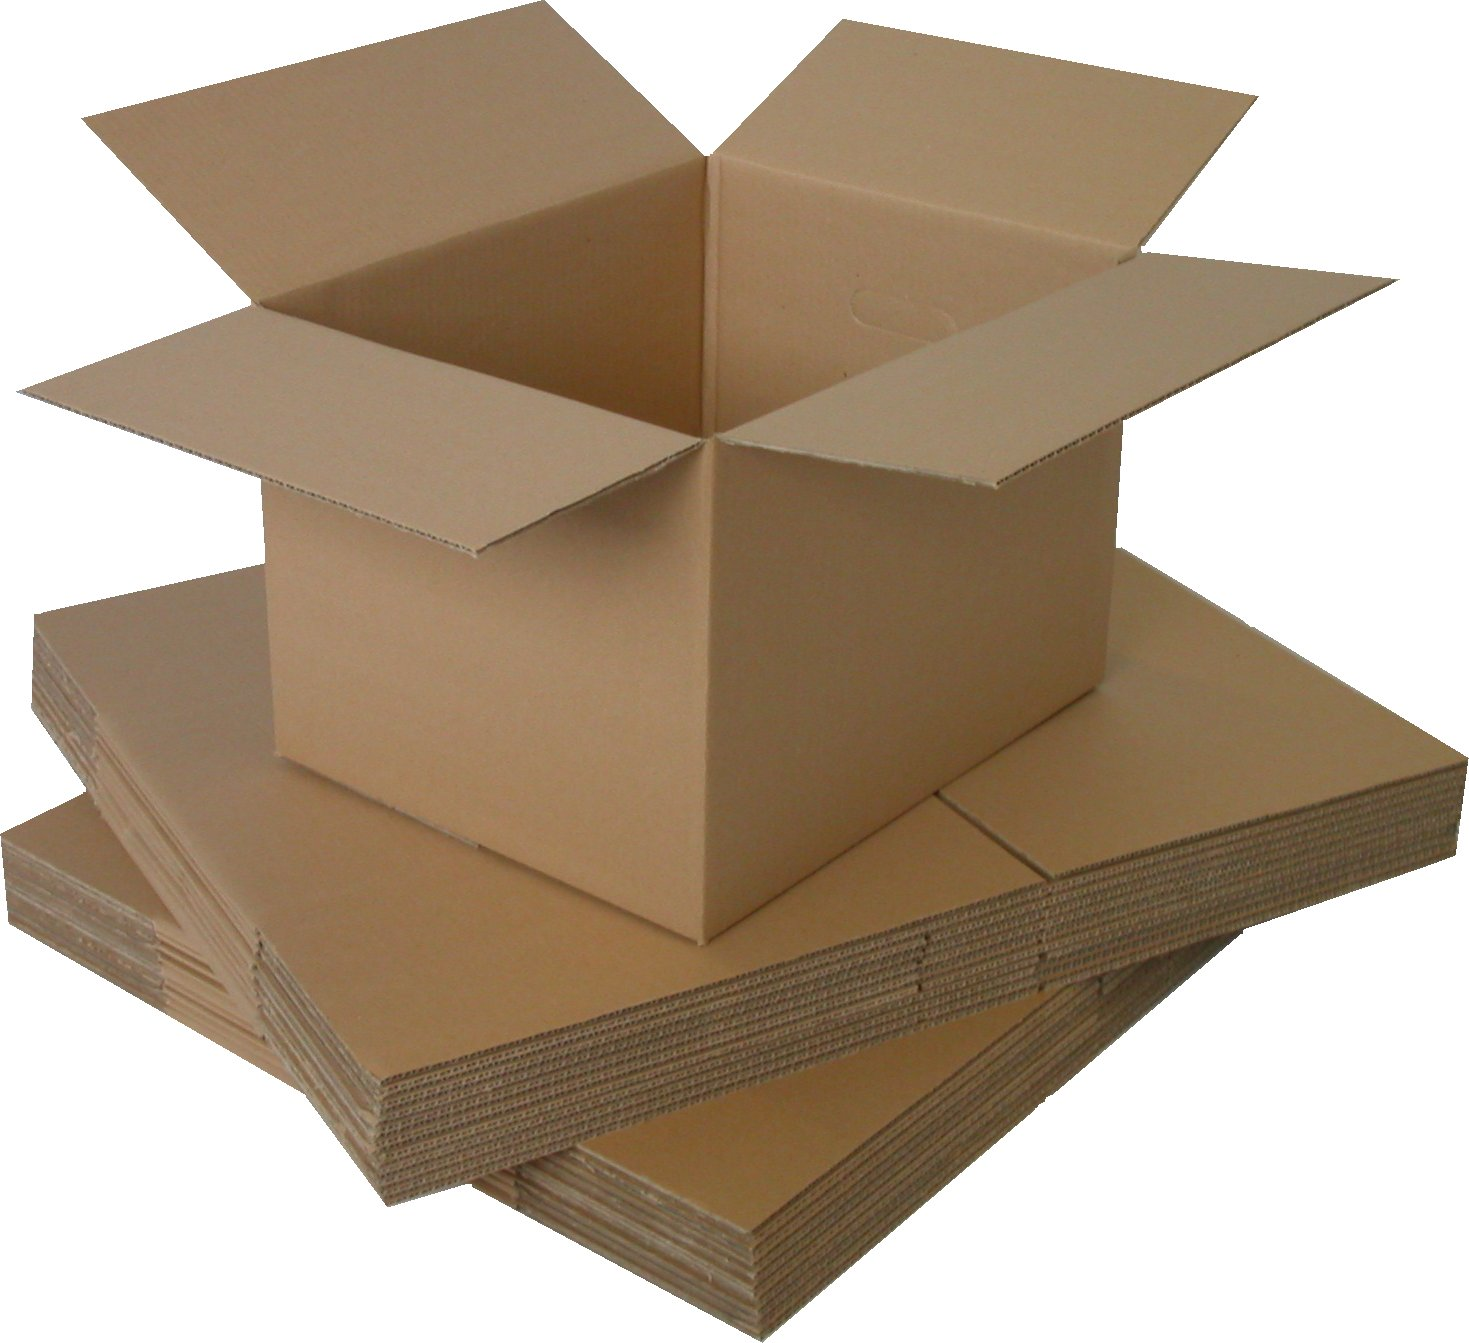 50 x Double Wall Boxes (377 x 283 x 279mm)